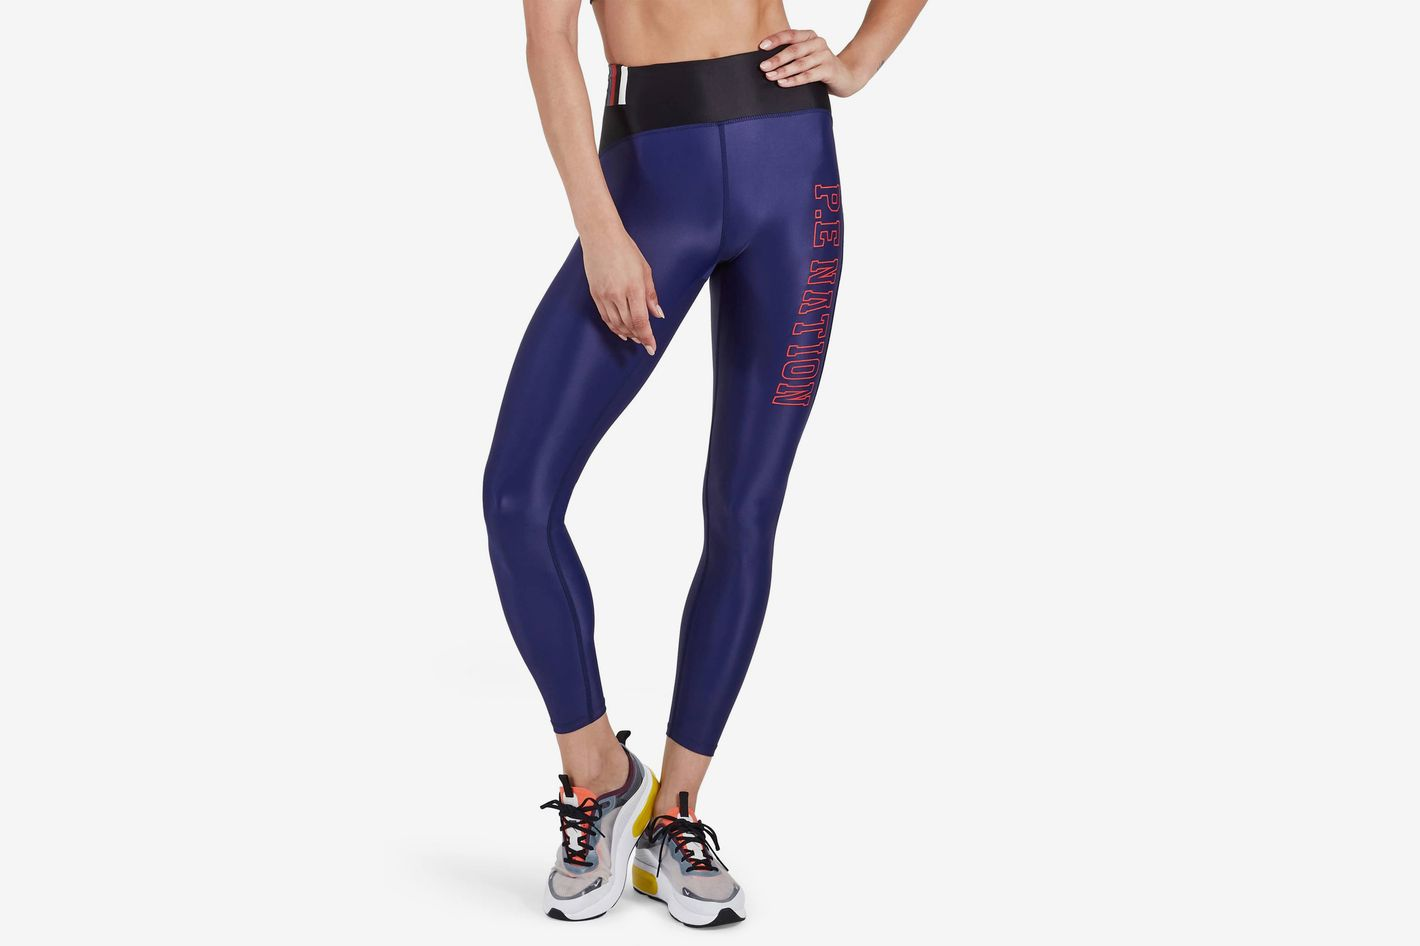 0a00a6457b121 Best for hot yoga. P.E. Nation Discus High Waist Leggings